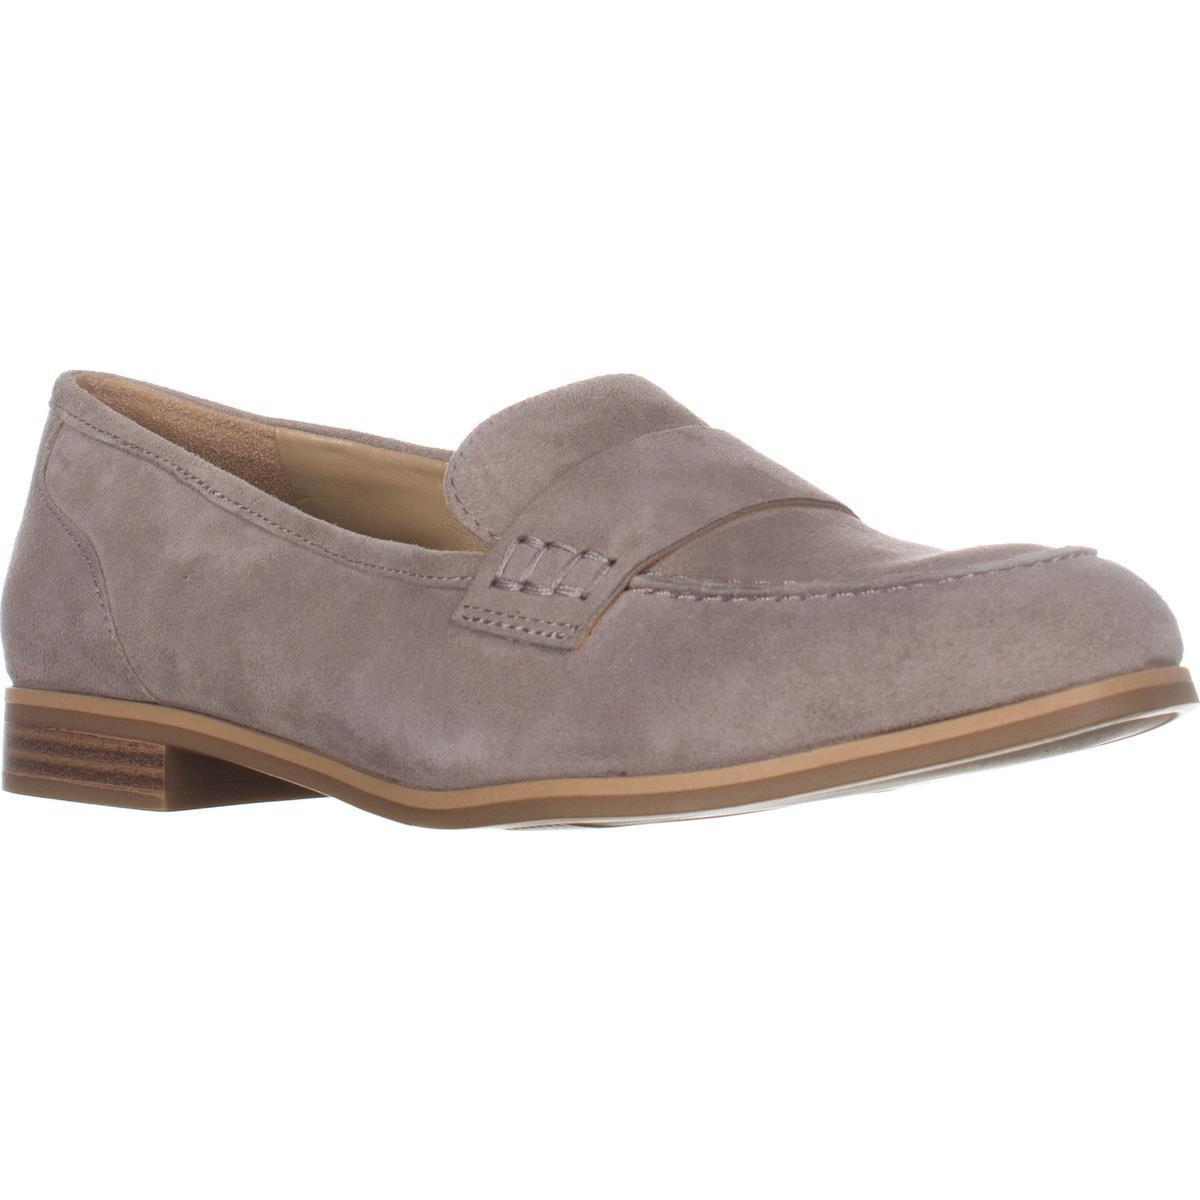 Womens Naturalizer Veronica Comfort Penny Loafers, Grey by Naturalizer